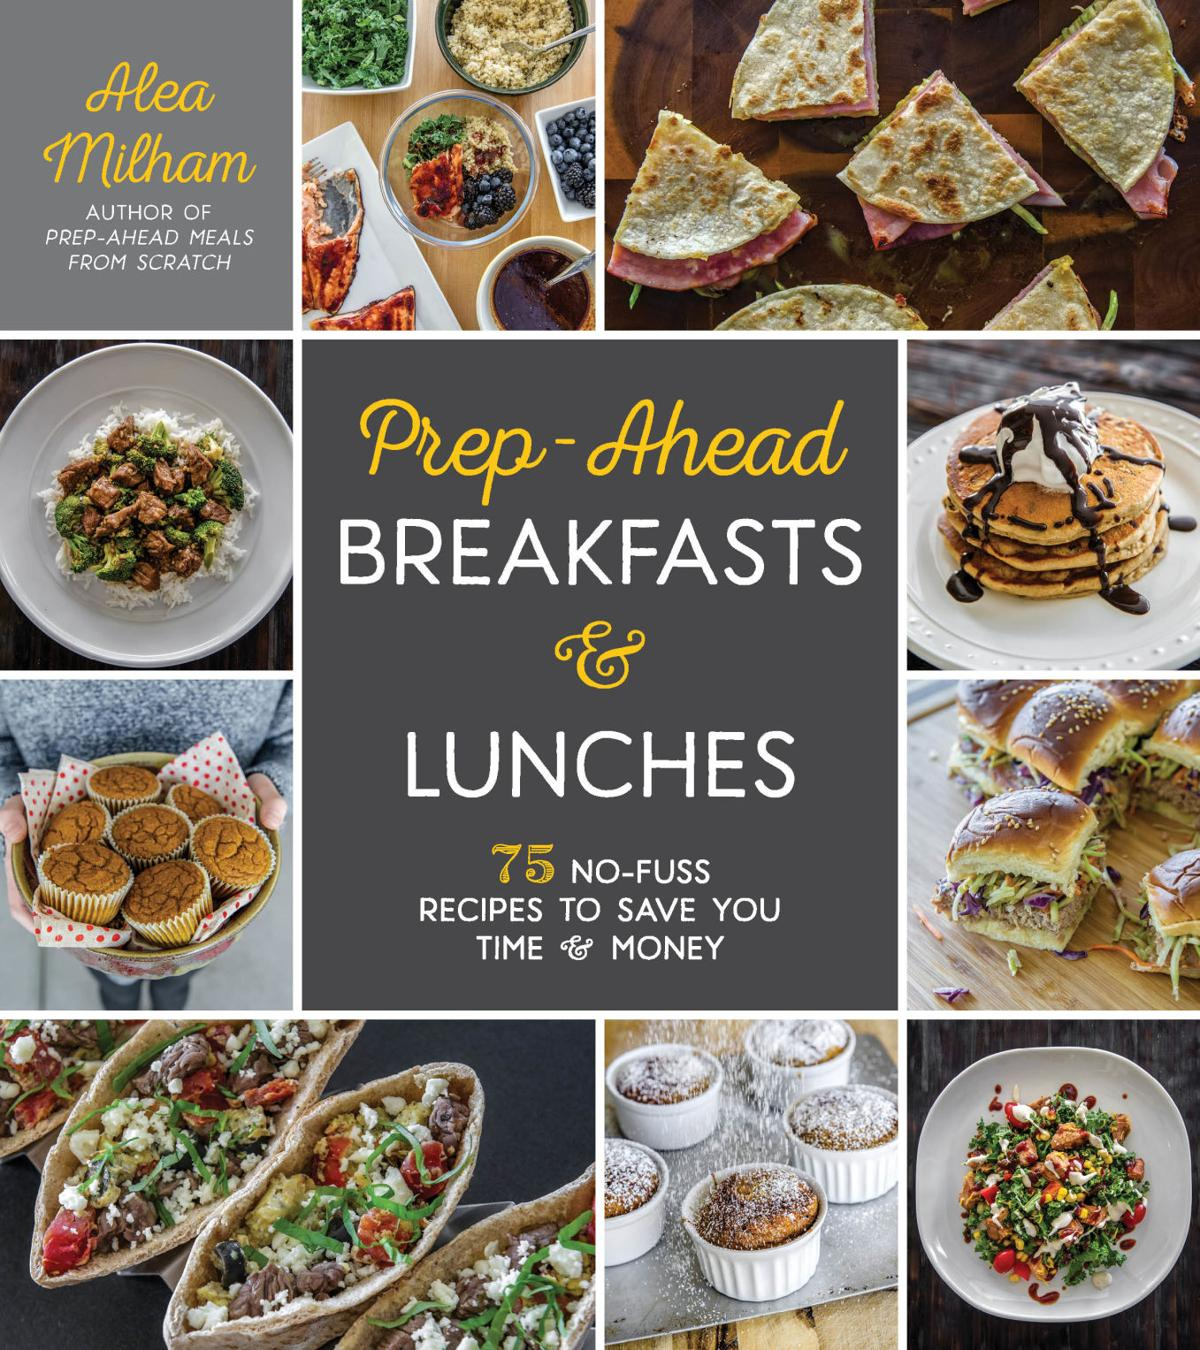 Prep-Ahead. Breakfasts & Lunches cover.jpg